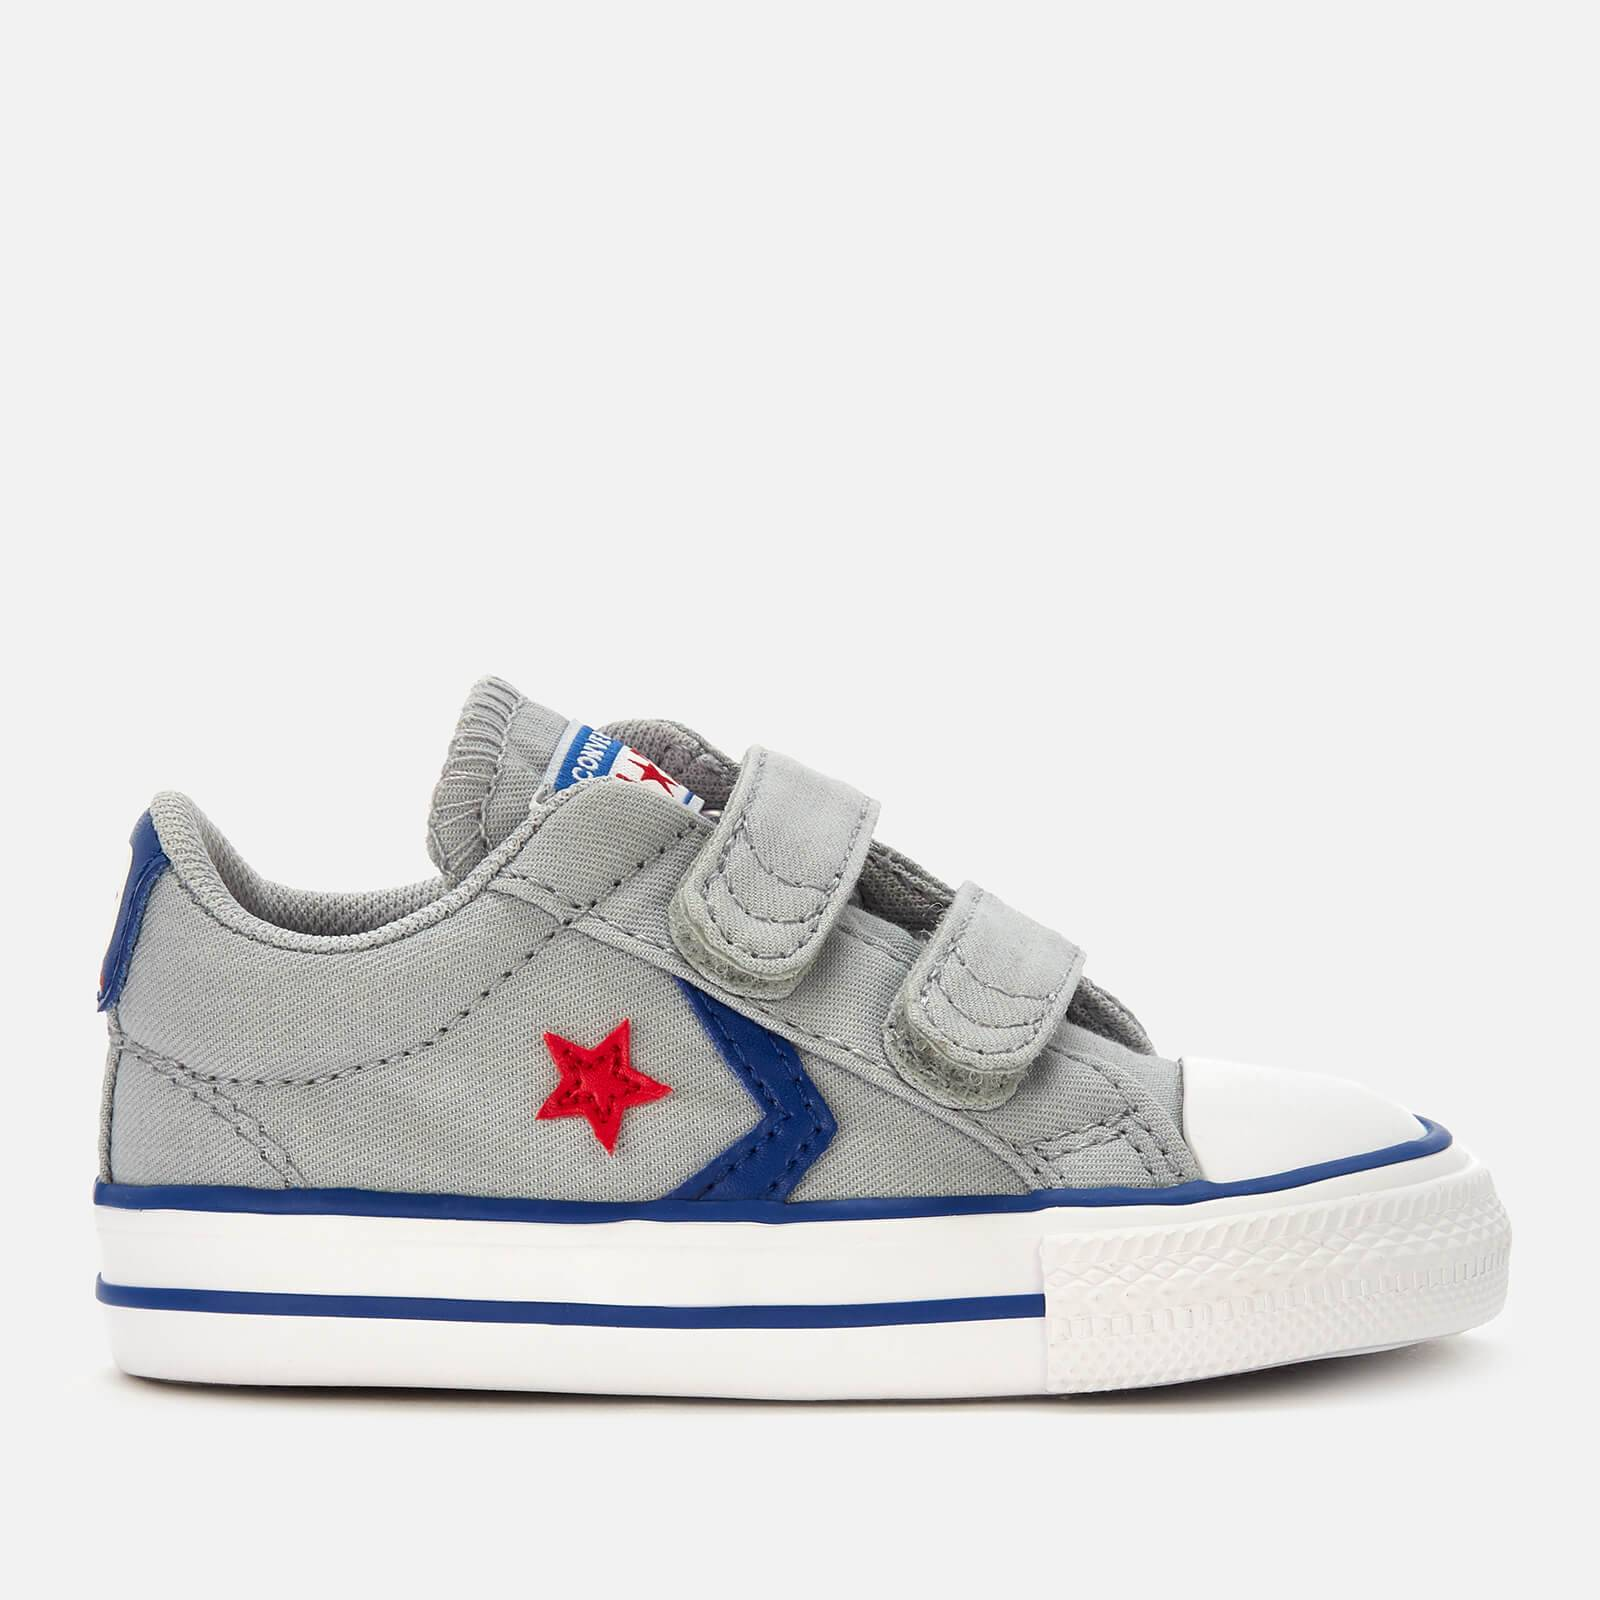 Converse Toddlers' Star Player 2 Velcro Ox Trainers - Wolf Grey/Blue/Enamel Red - UK 4 Toddler